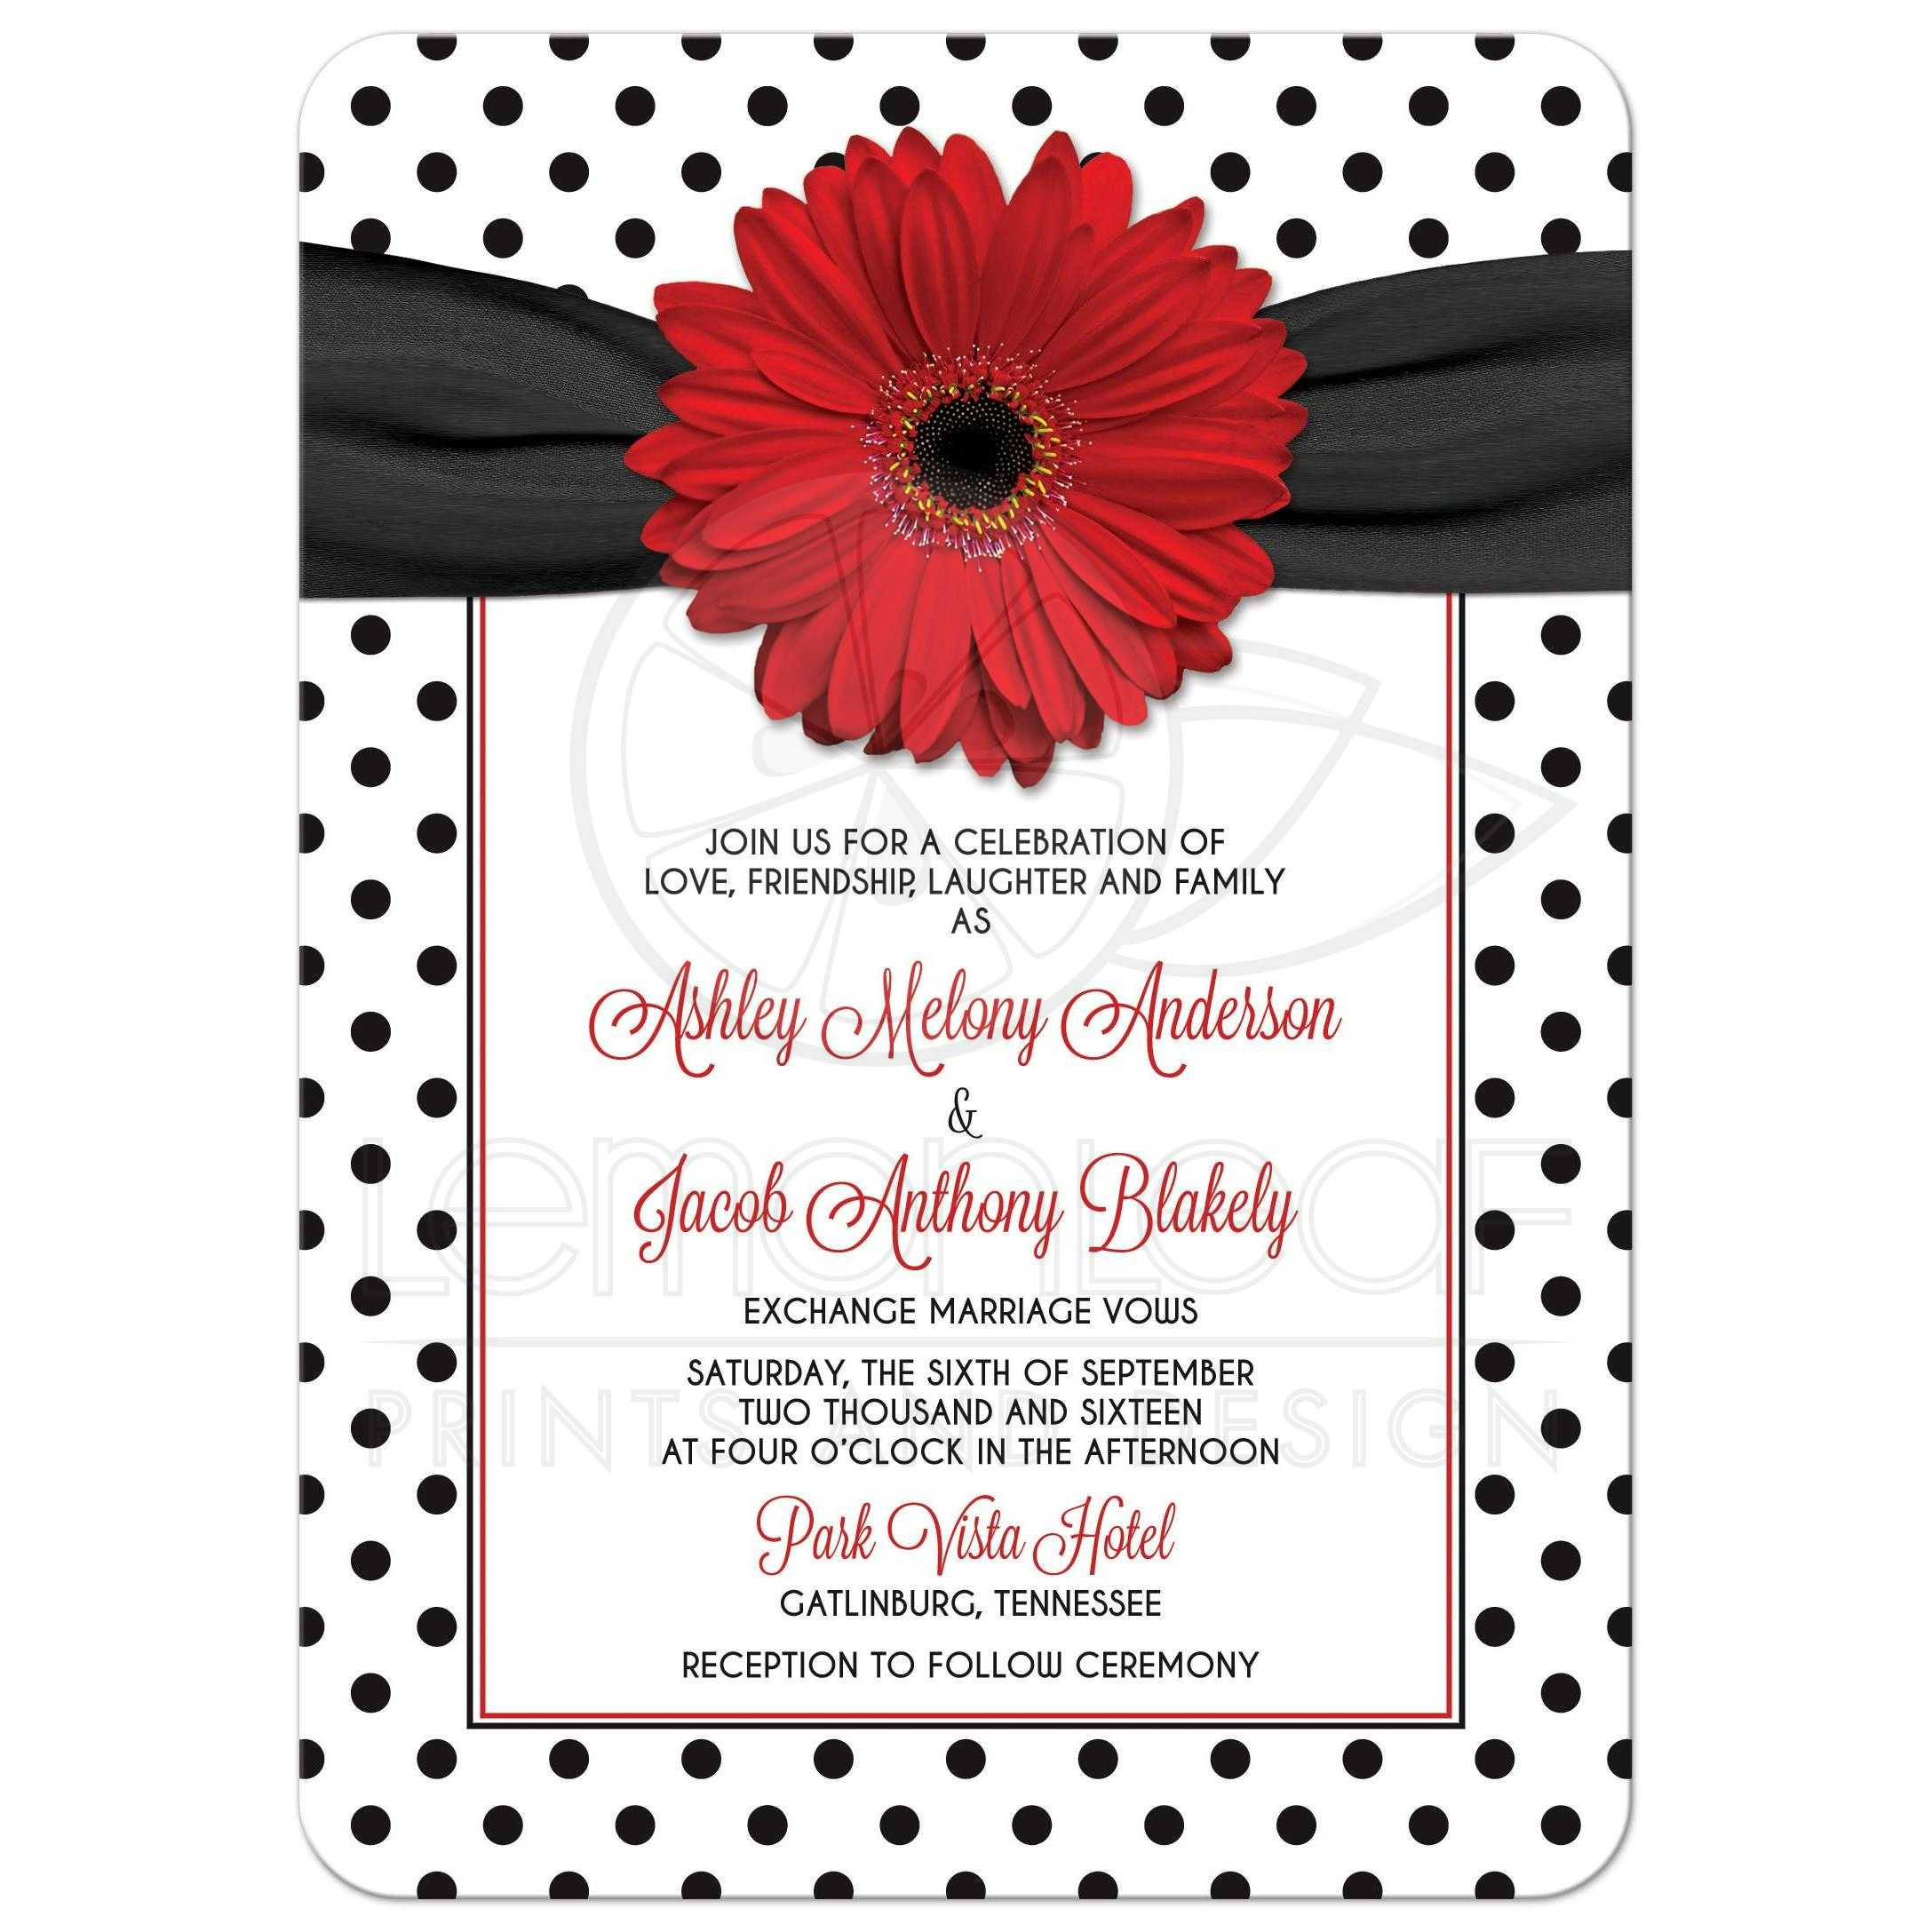 red daisy polka dot wedding invitation retro red black white